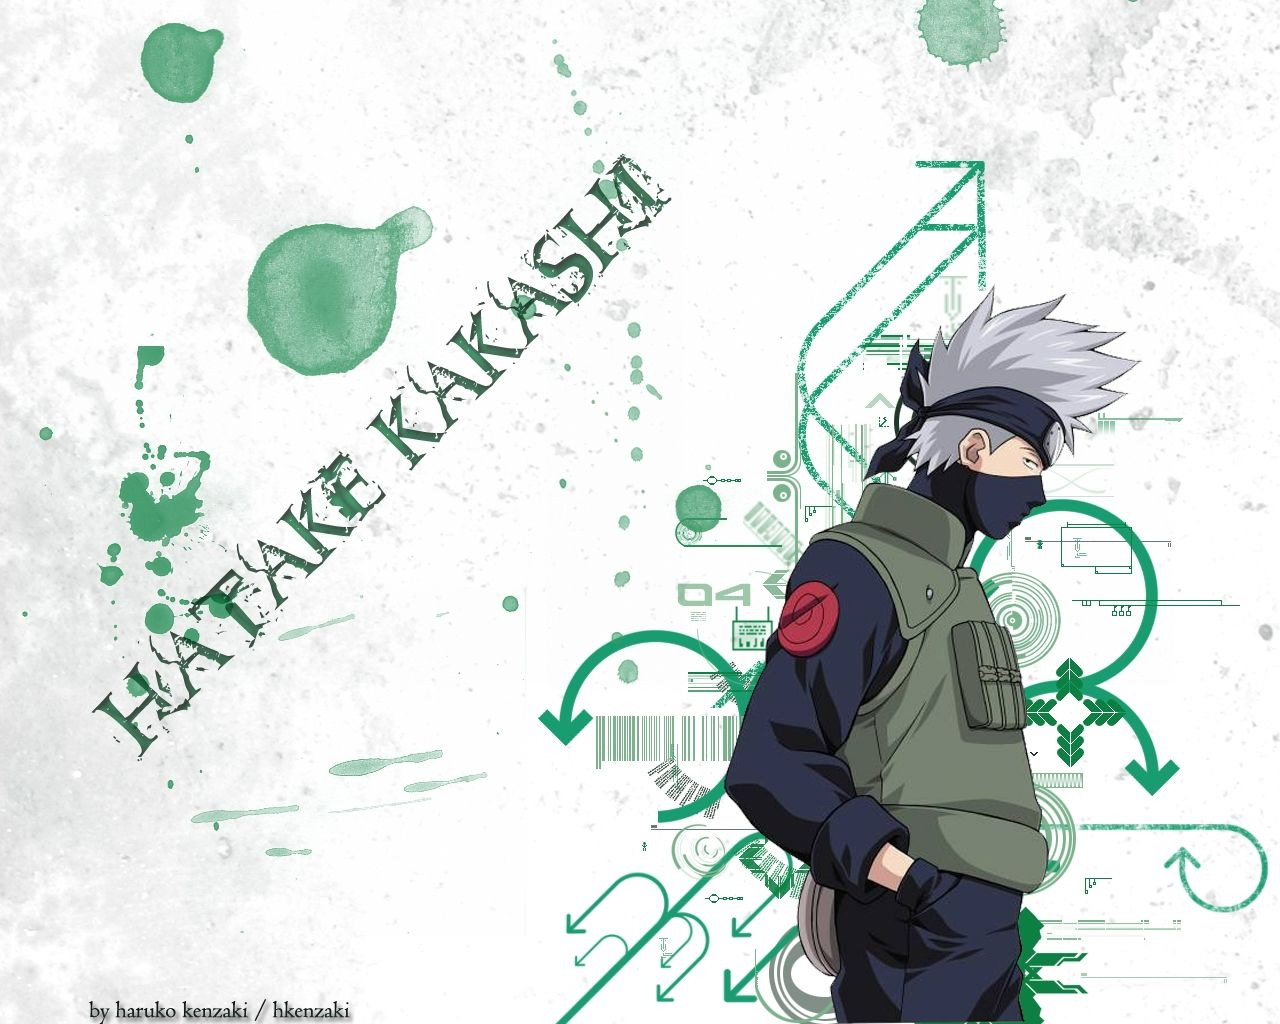 Top Kakashi Iphone Wallpaper Wallpapers 1280x1024